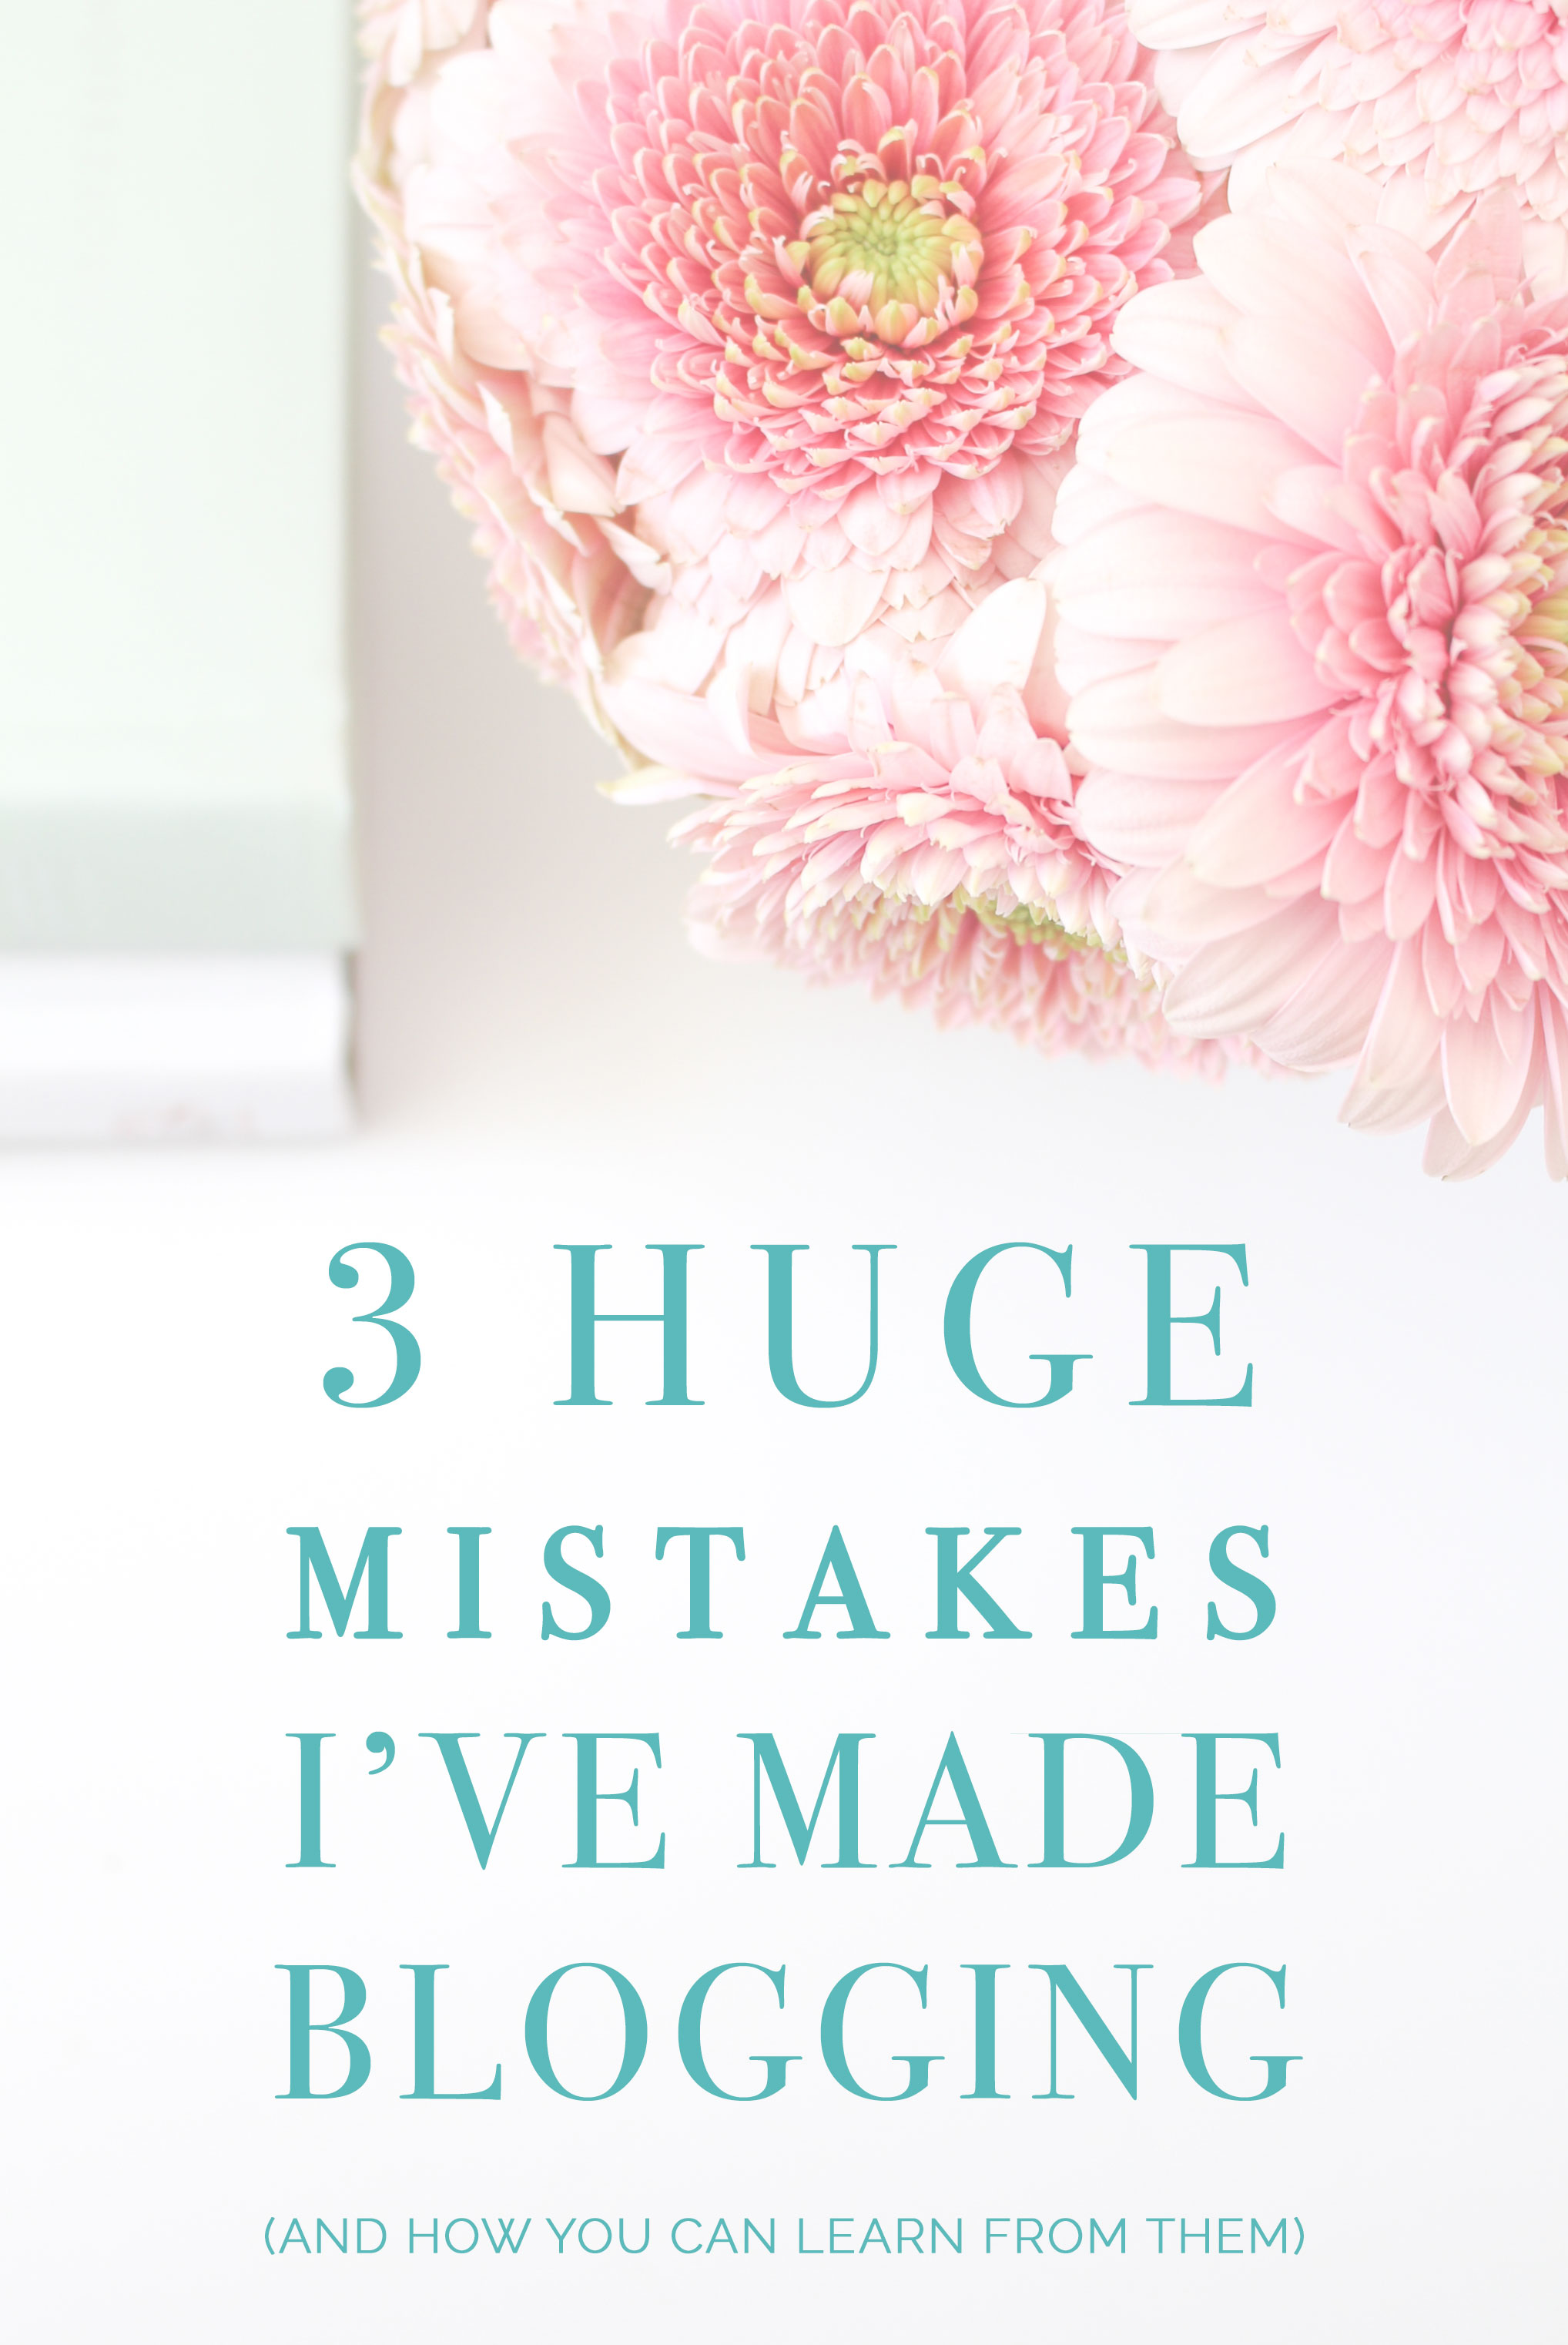 3 Huge Mistakes I've Made Blogging (And How You Can Learn From Them) - Leigh Clair